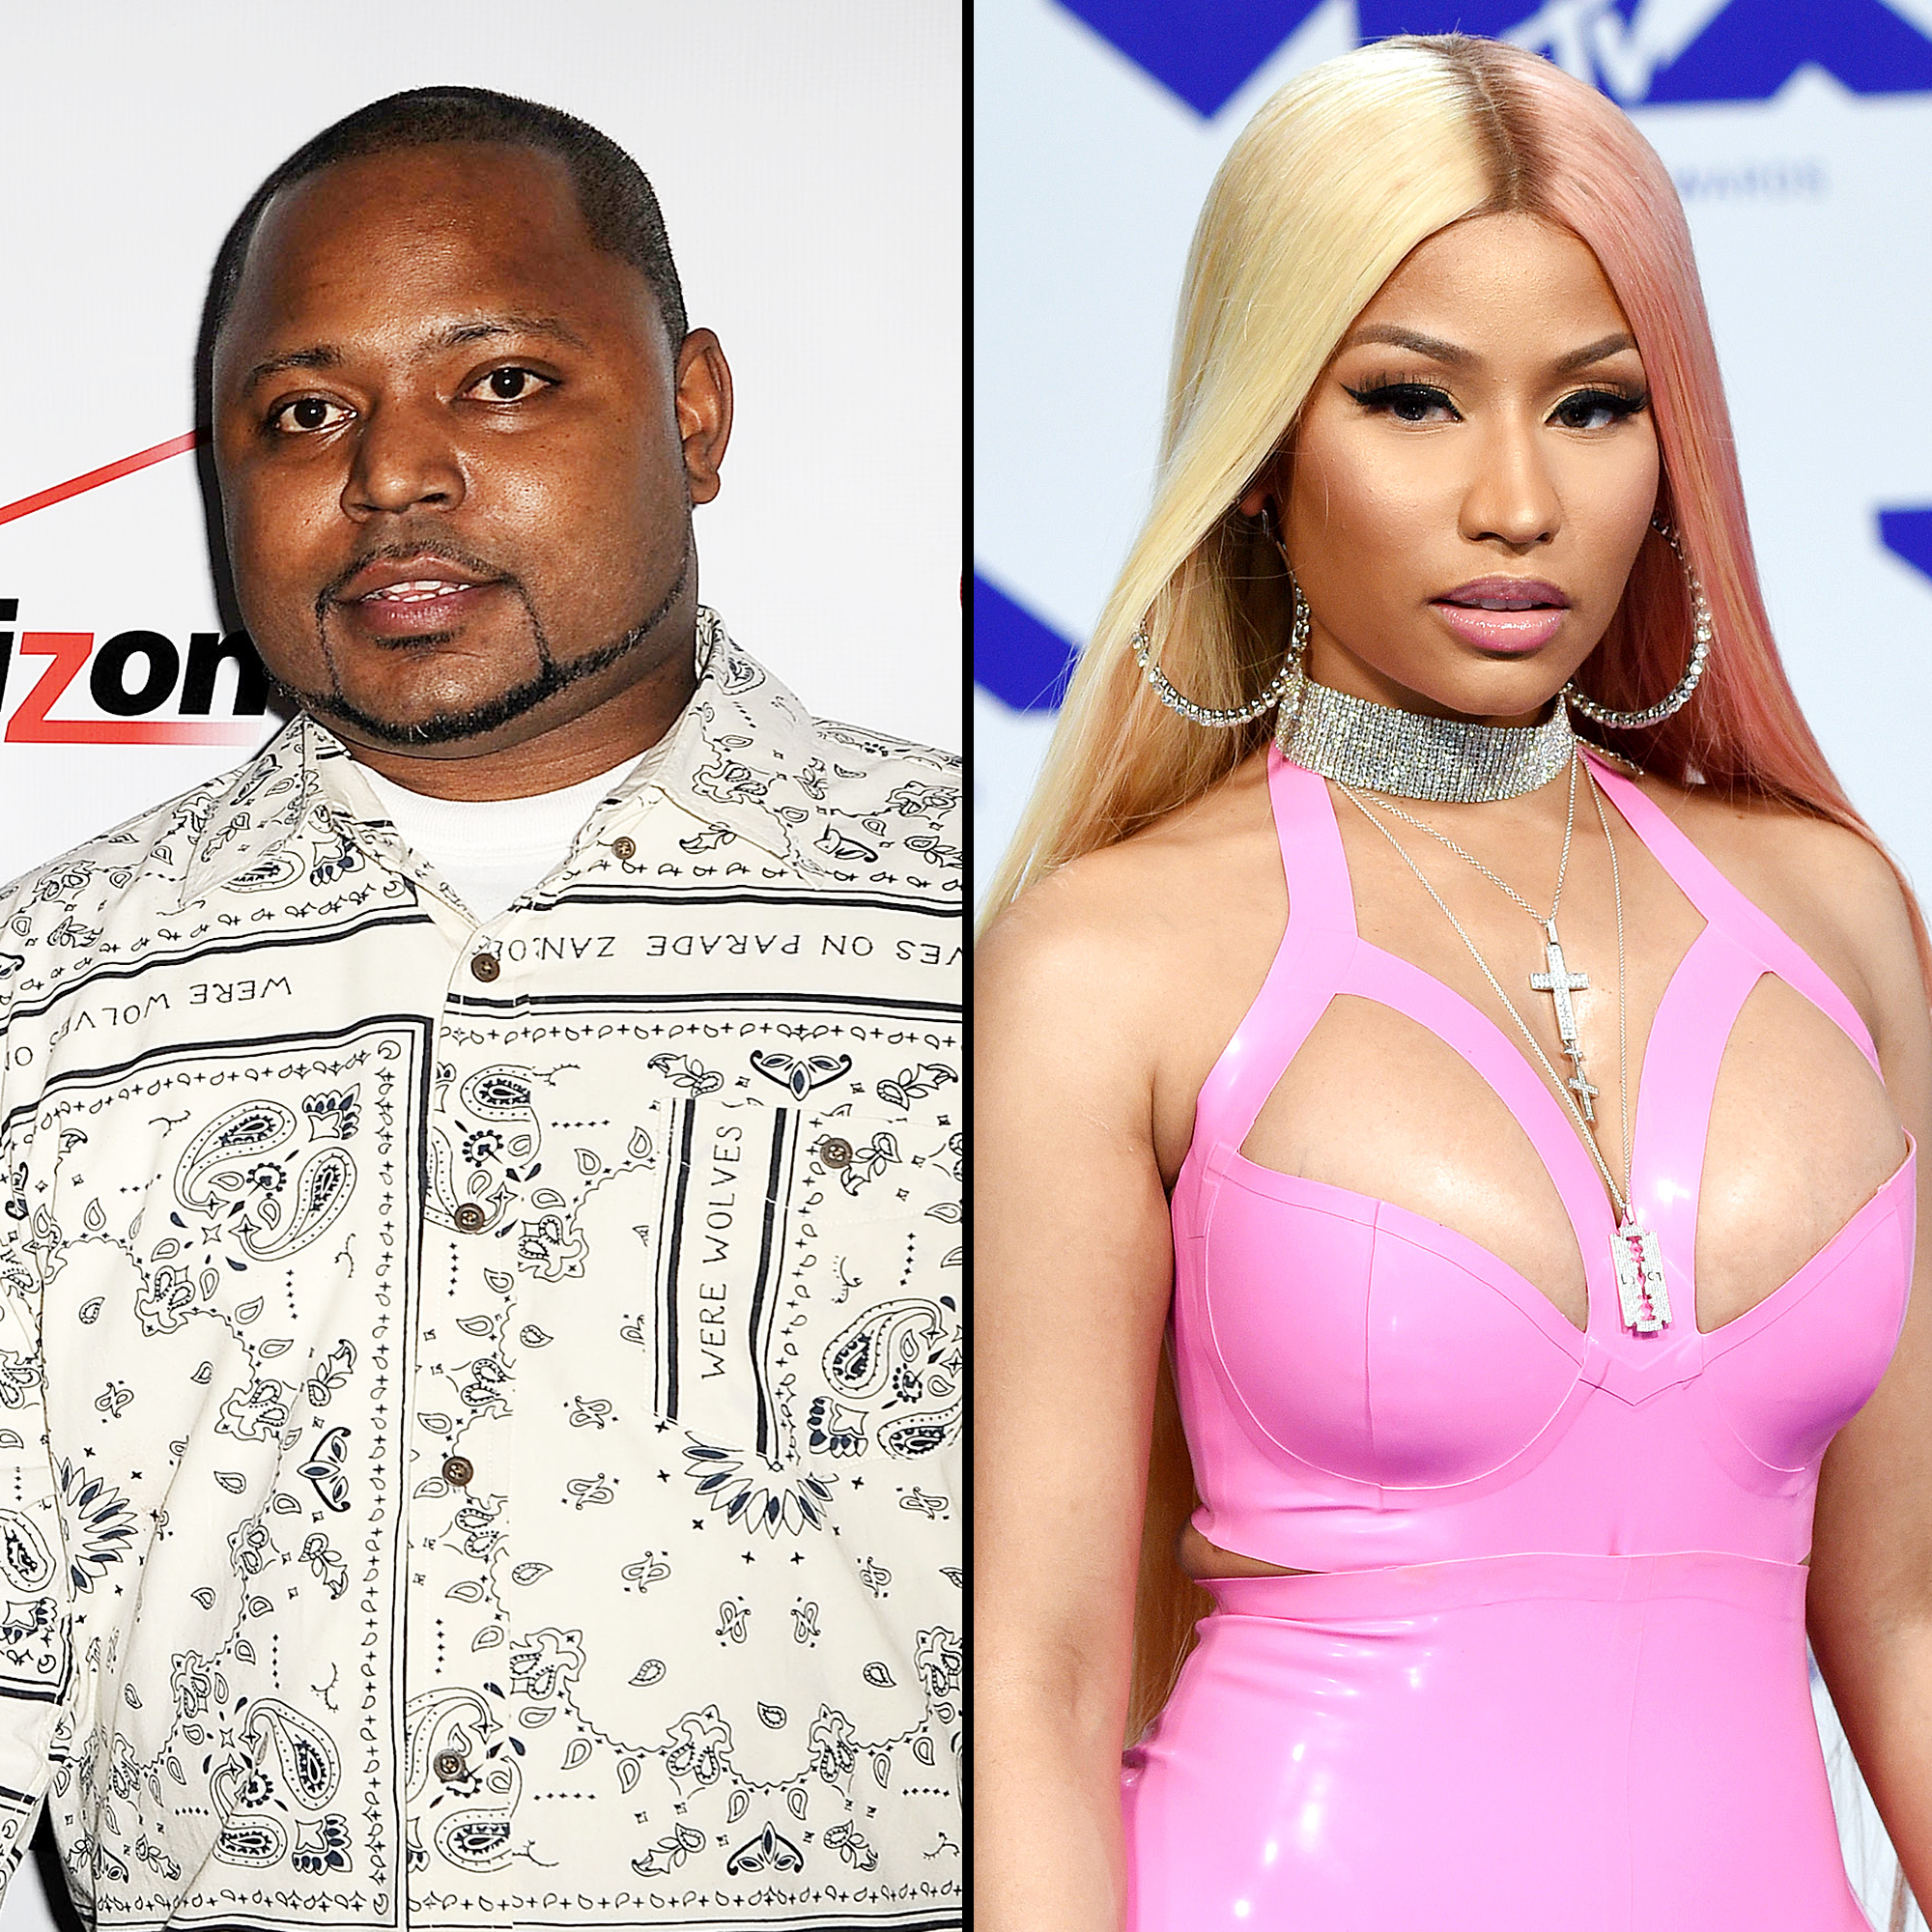 Nicki Minaj's Brother Convicted Of Raping 11-Year-Old Stepdaughter